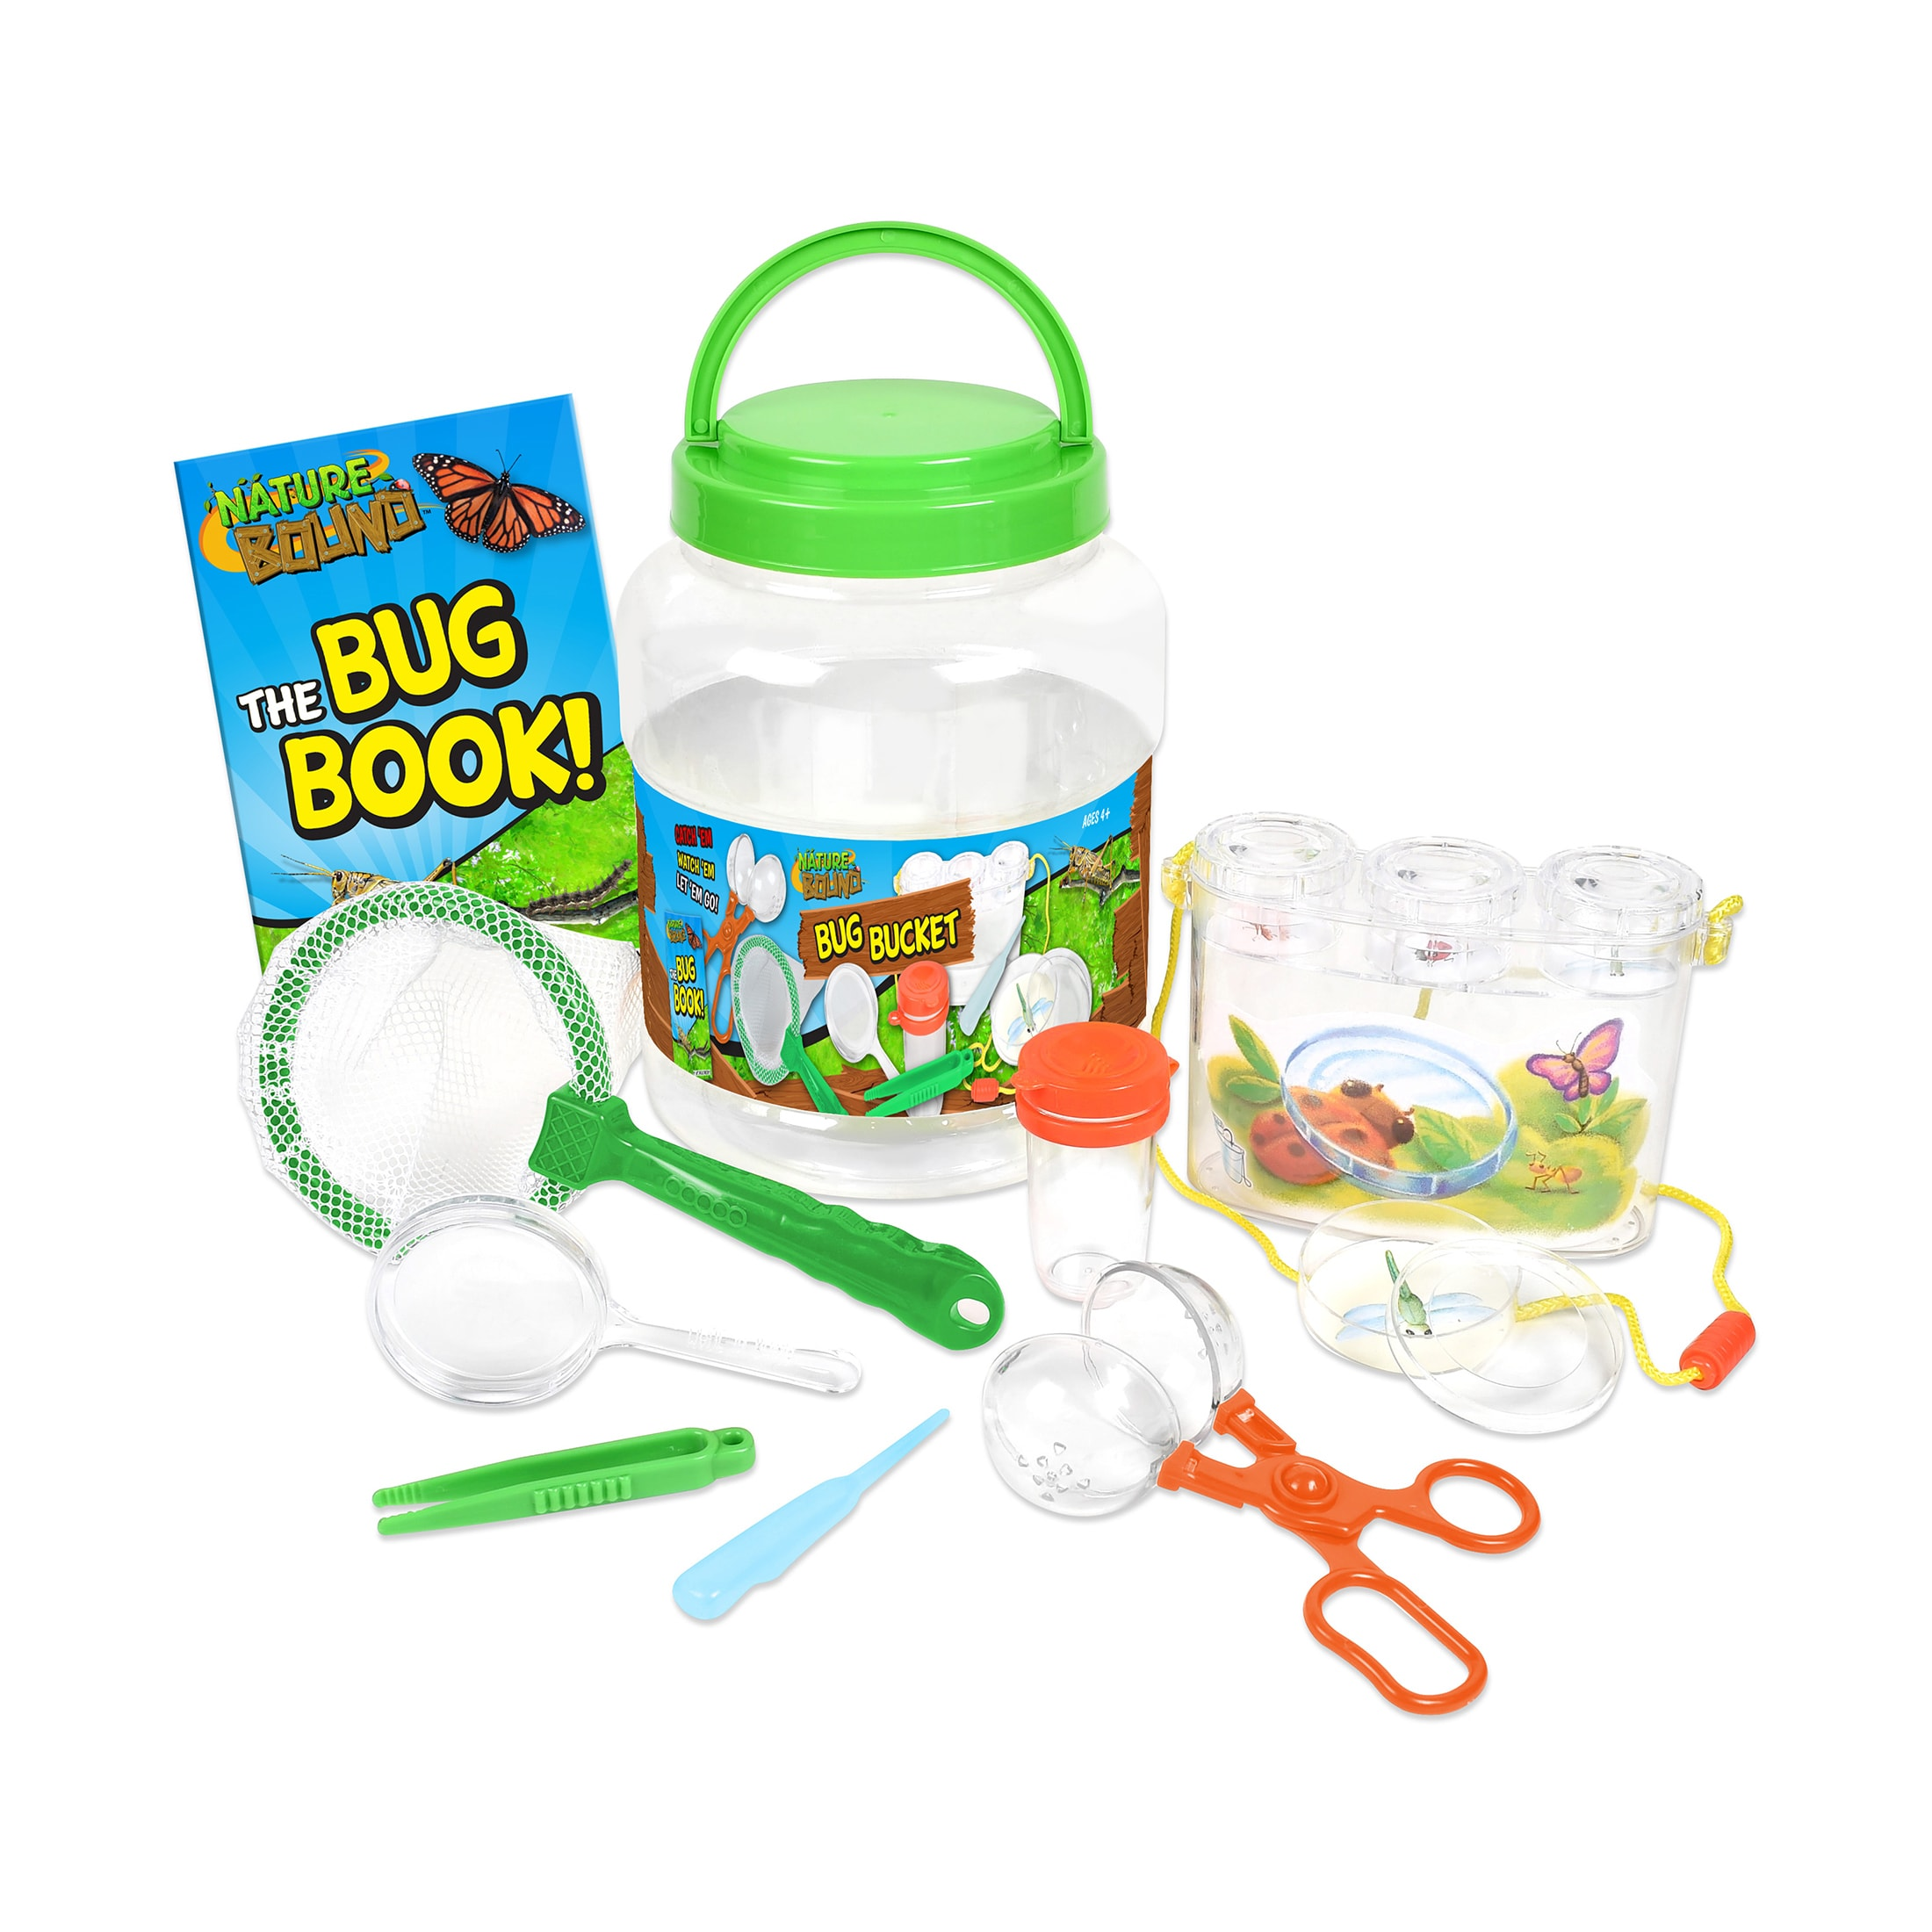 Nature Bound Bug Bucket Habitat Set by Thin Air